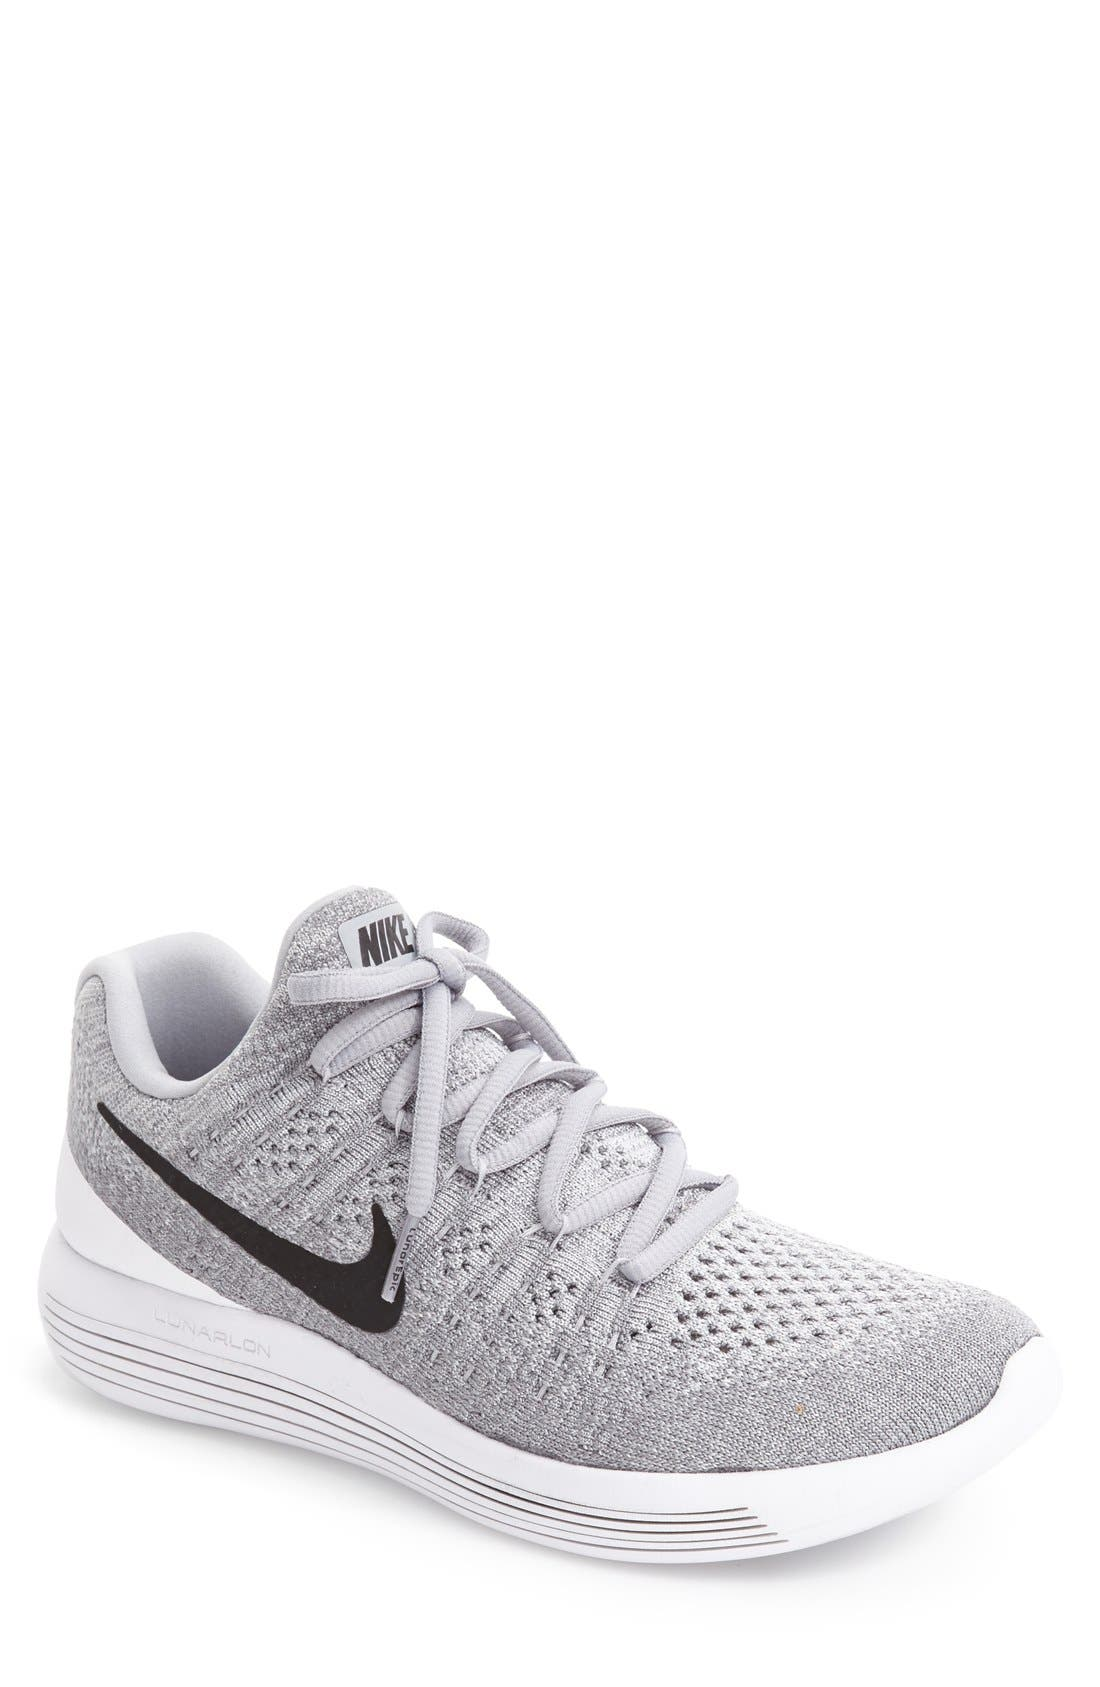 Nike Flyknit 2 LunarEpic Running Shoe (Men)